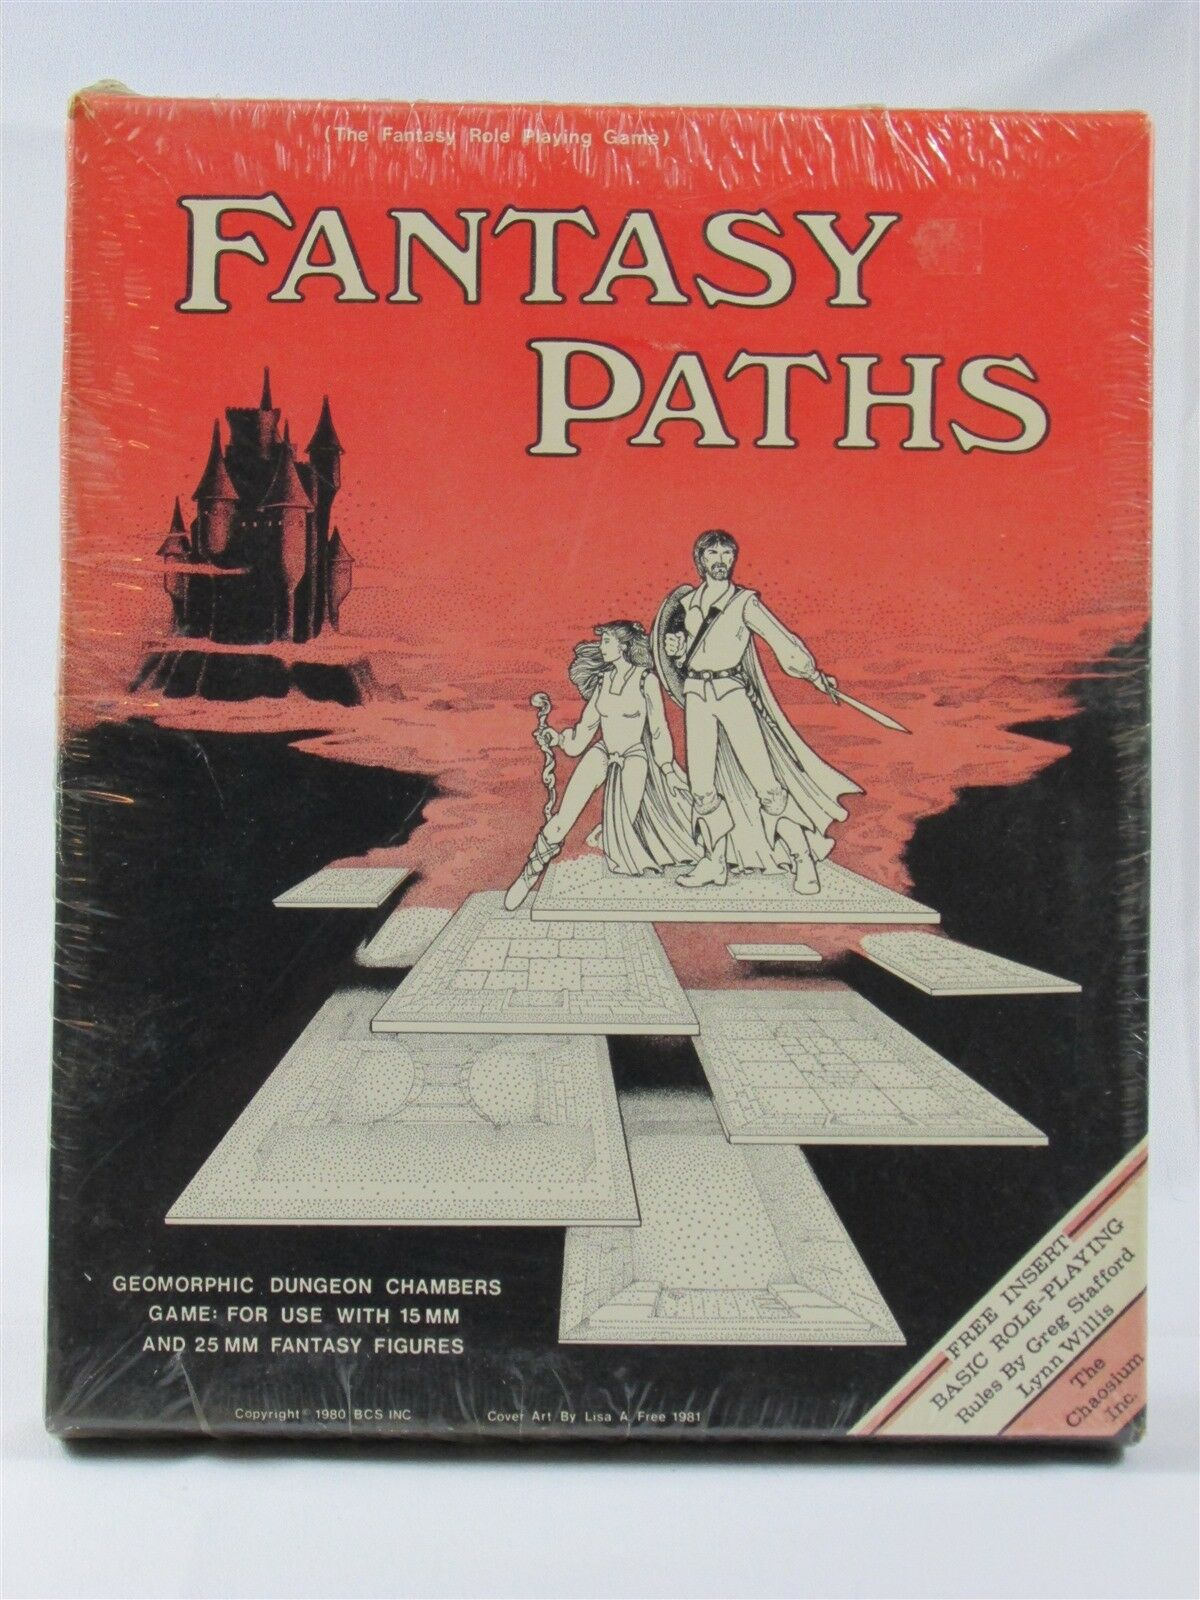 RARE FANTASY PATHS NEW SEALED IN SHRINK  HARD TO TO TO FIND CHAOSIUM BOARD GAME 0b02df